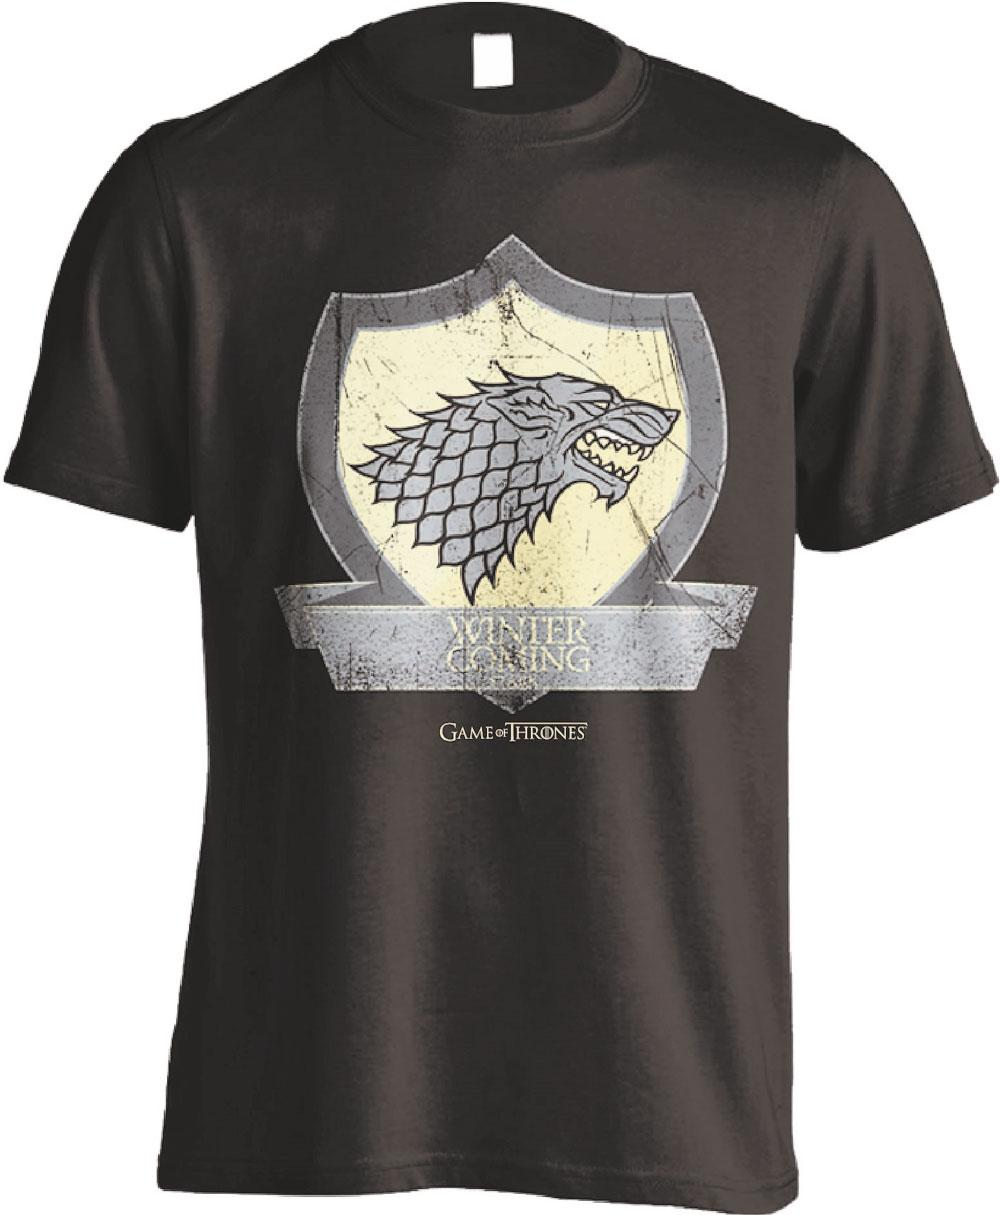 Game of Thrones T-Shirt Stark Coat Of Arms Size L